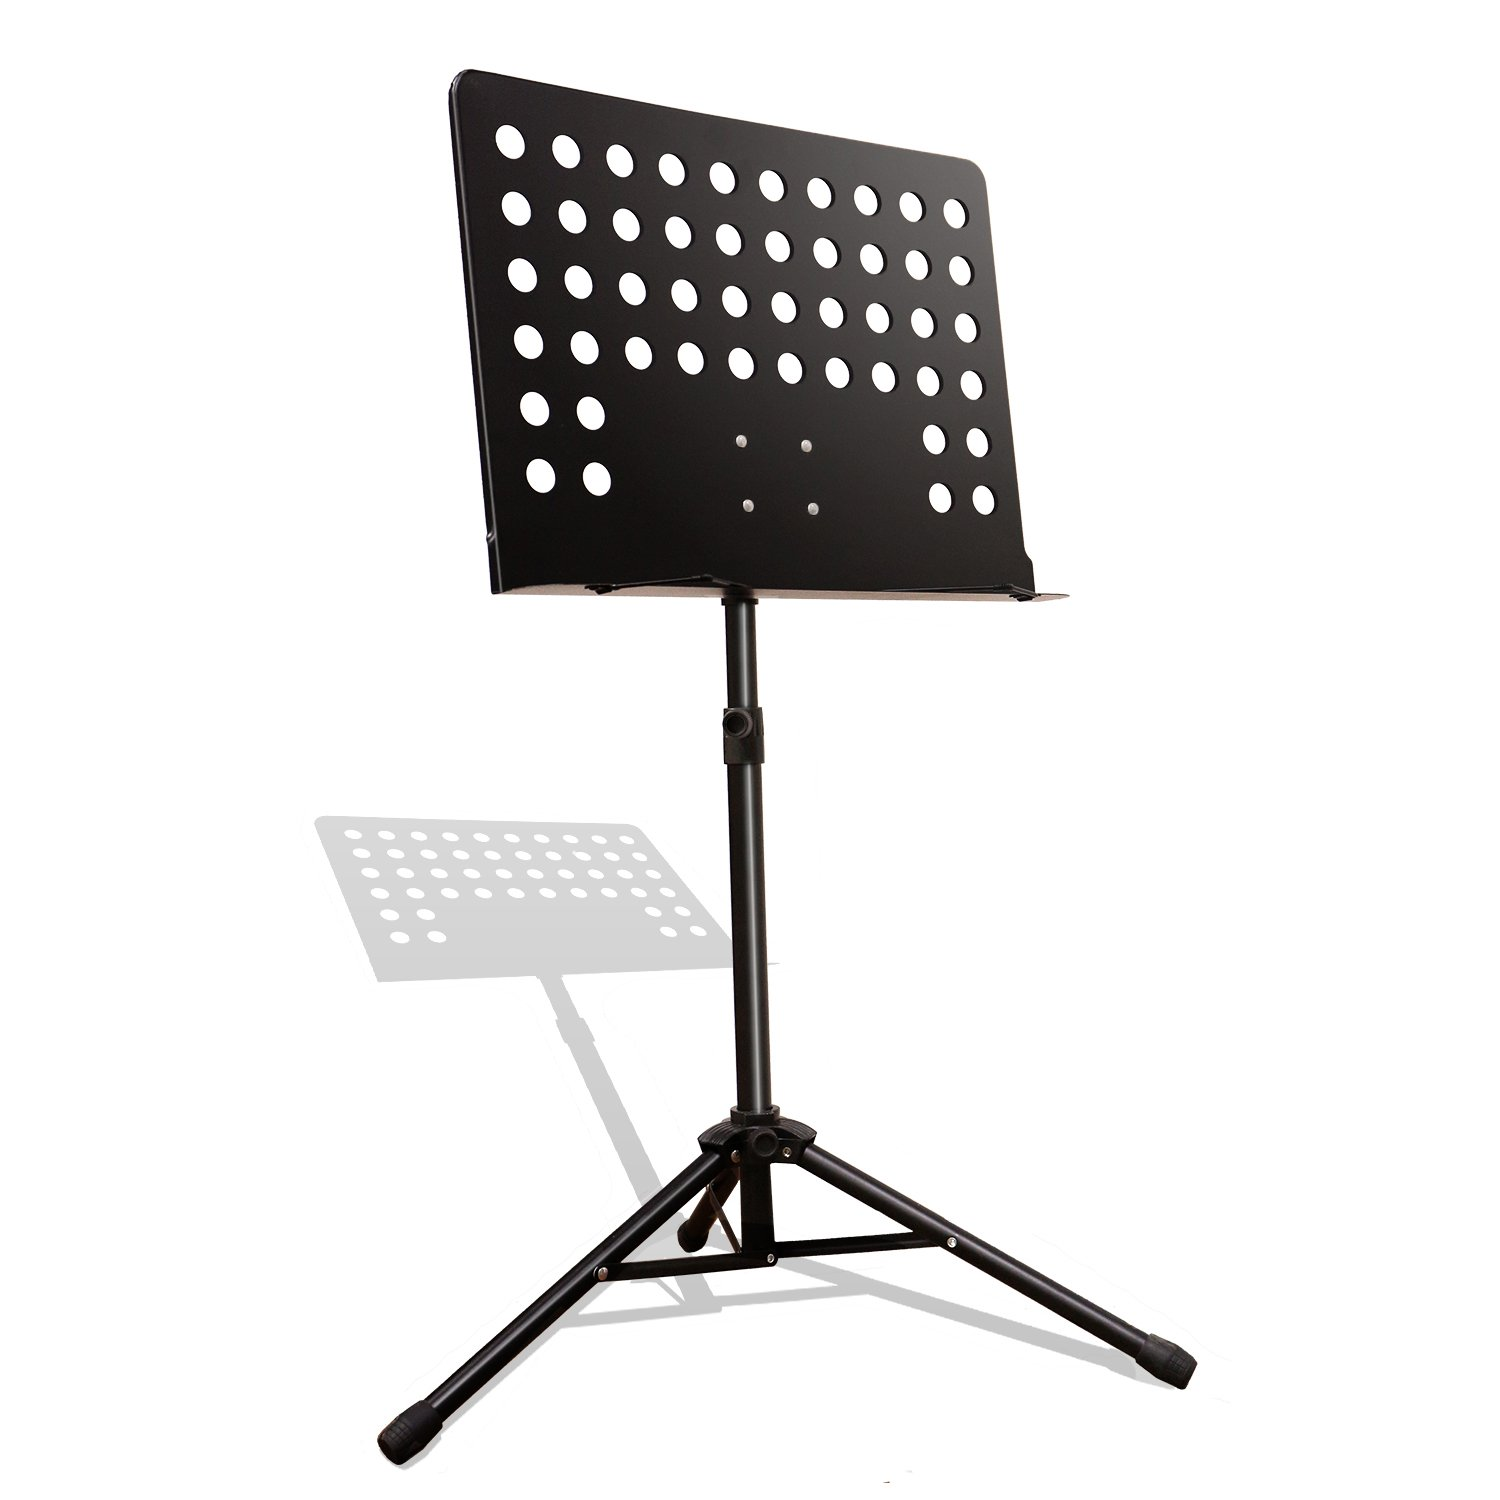 Maestro Extra Durable Metal Music Note Stand Orchestra Heavy Duty Tripod APL1281 by PARTYSAVING (Image #1)